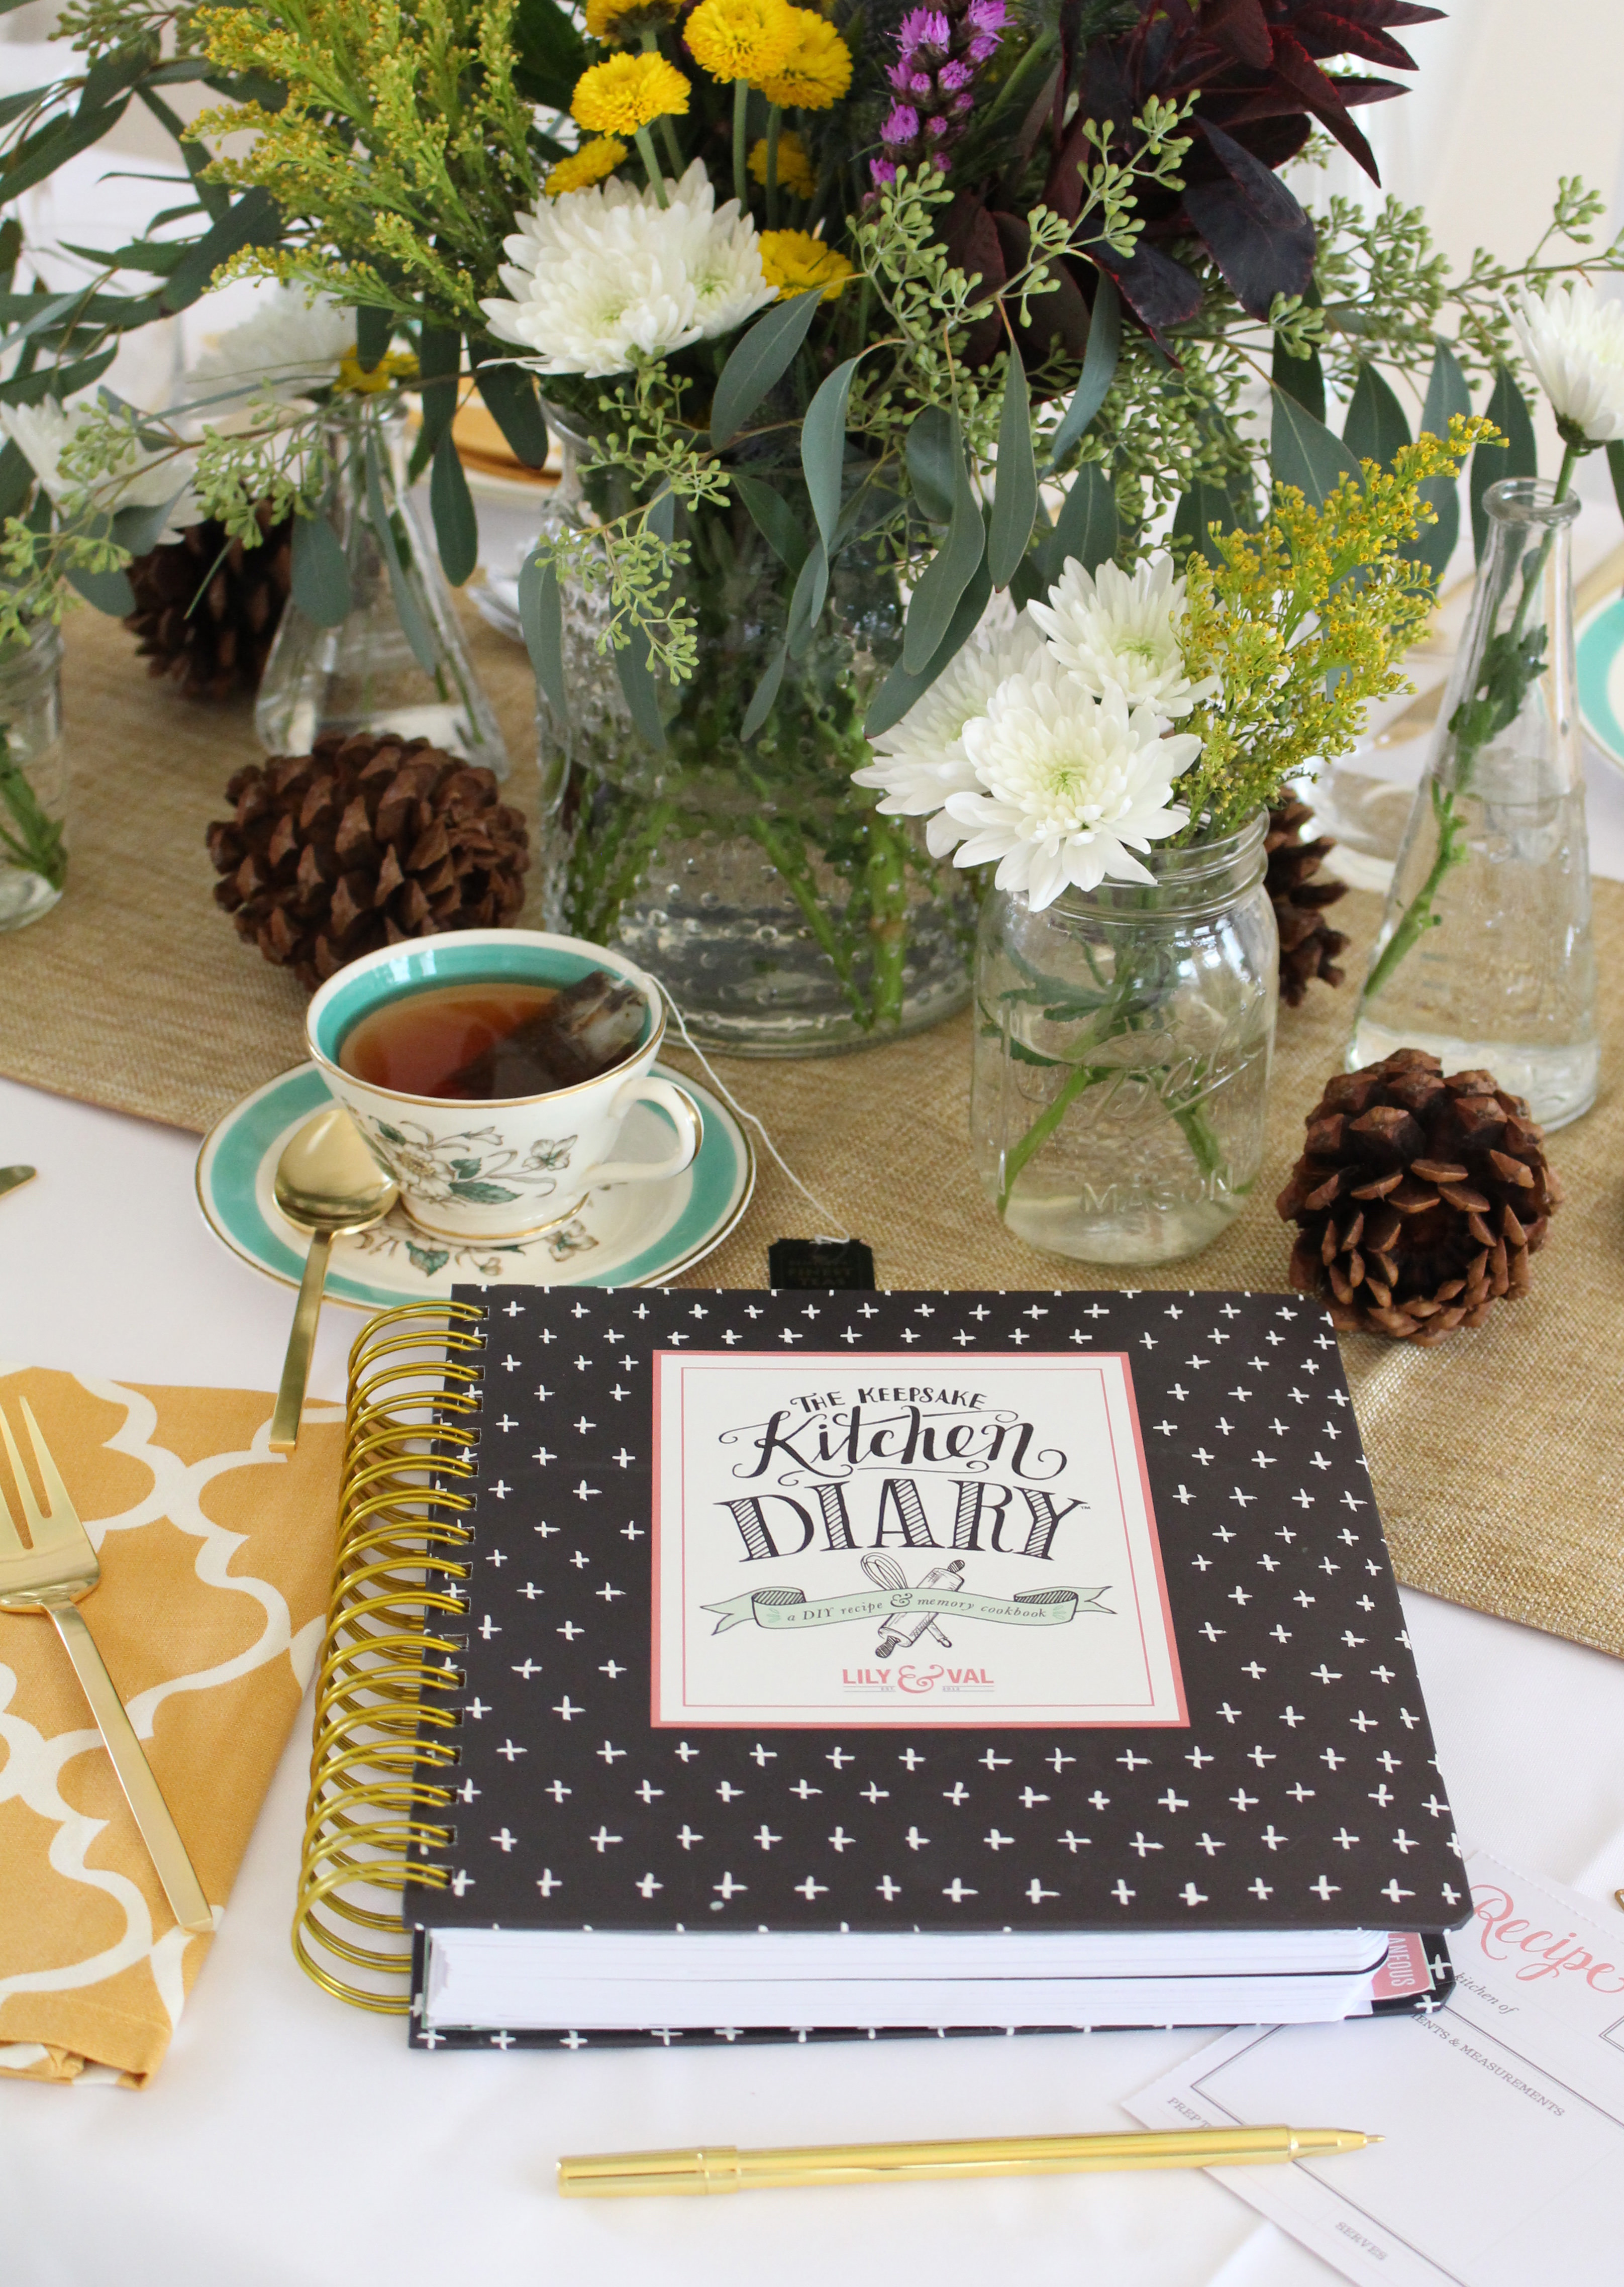 Thanksgiving is the biggest food holiday and the perfect time to record precious recipes and memories in your Keepsake Kitchen Diary